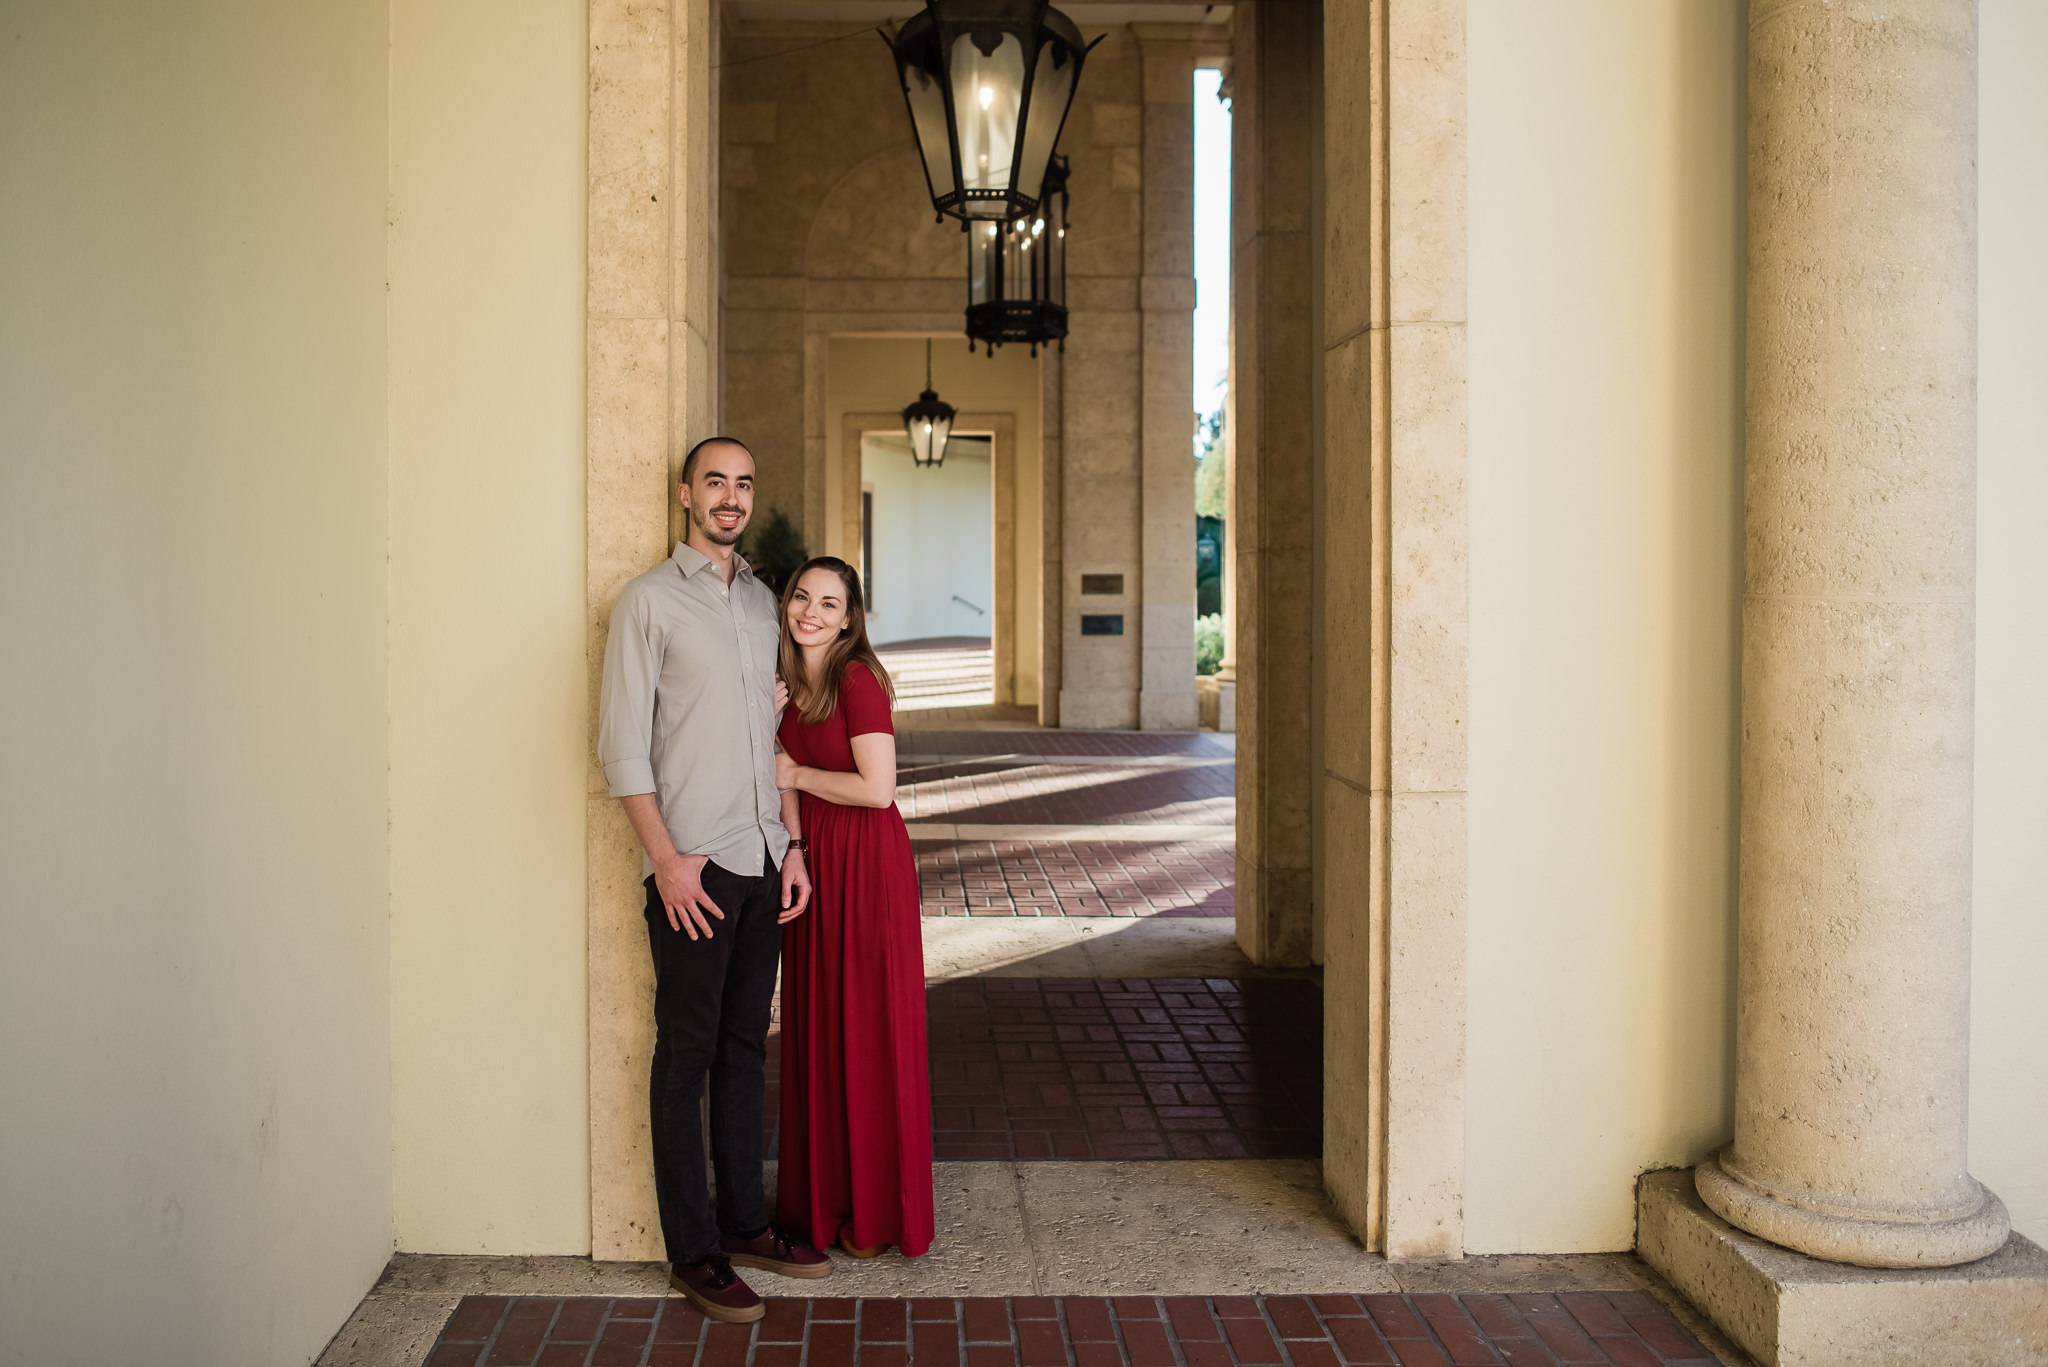 TAMPA_ENGAGEMENT_PHOTOGRAPHER_SMMZ_6719.jpg